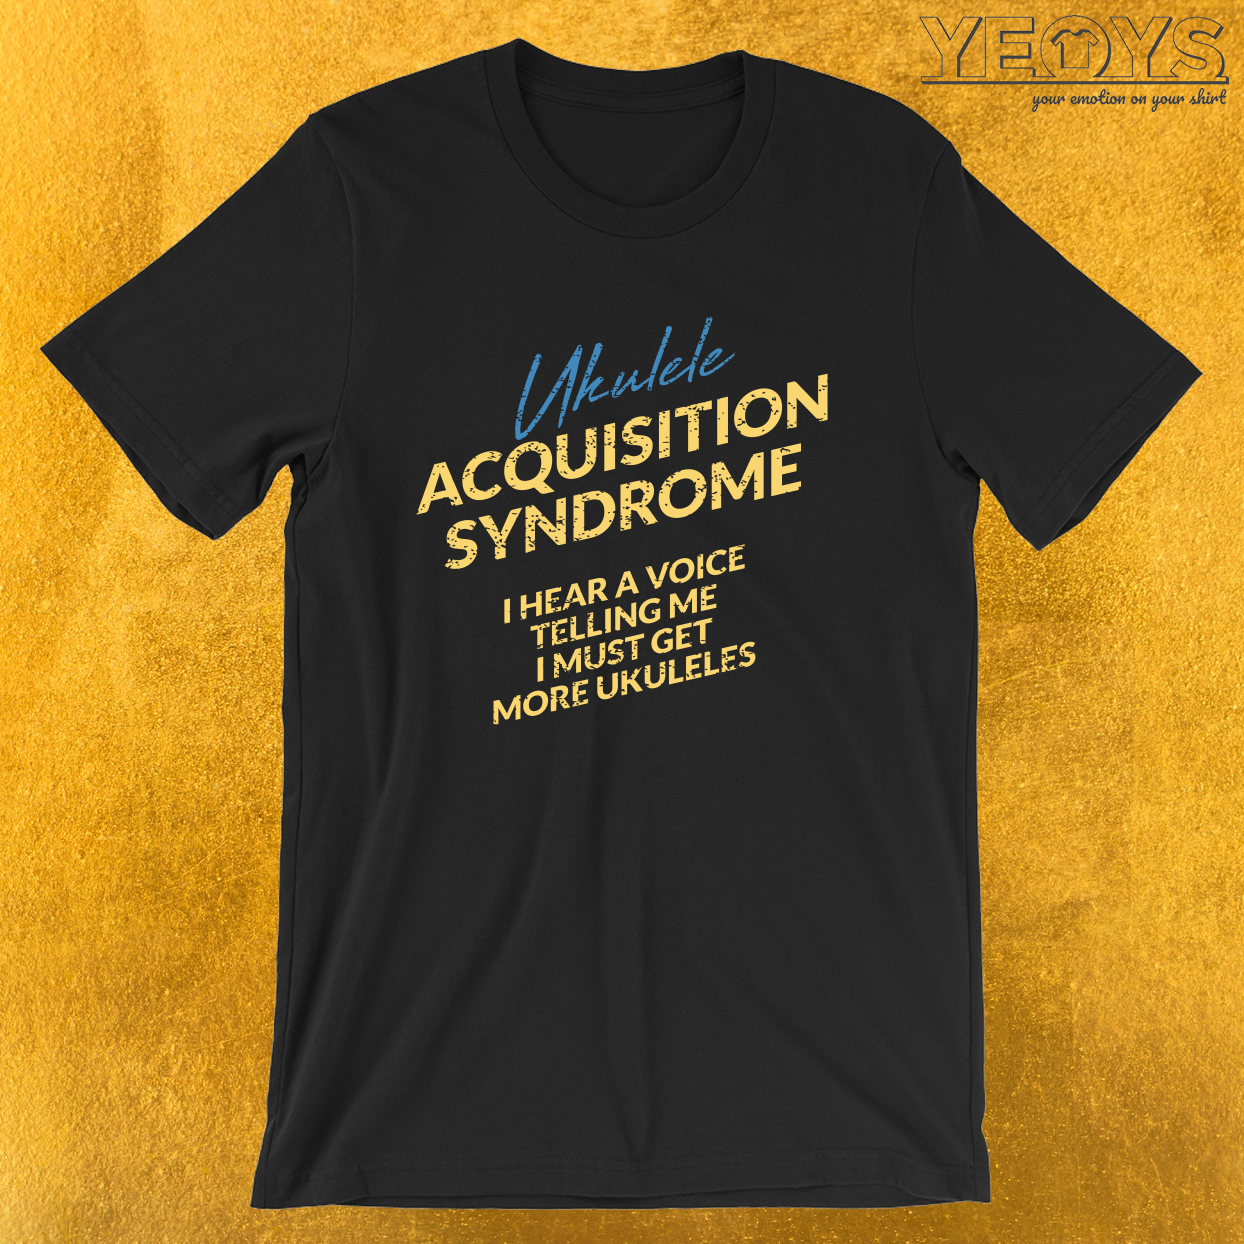 Ukulele Acquisition Syndrome – Ukulele Guitar Tee